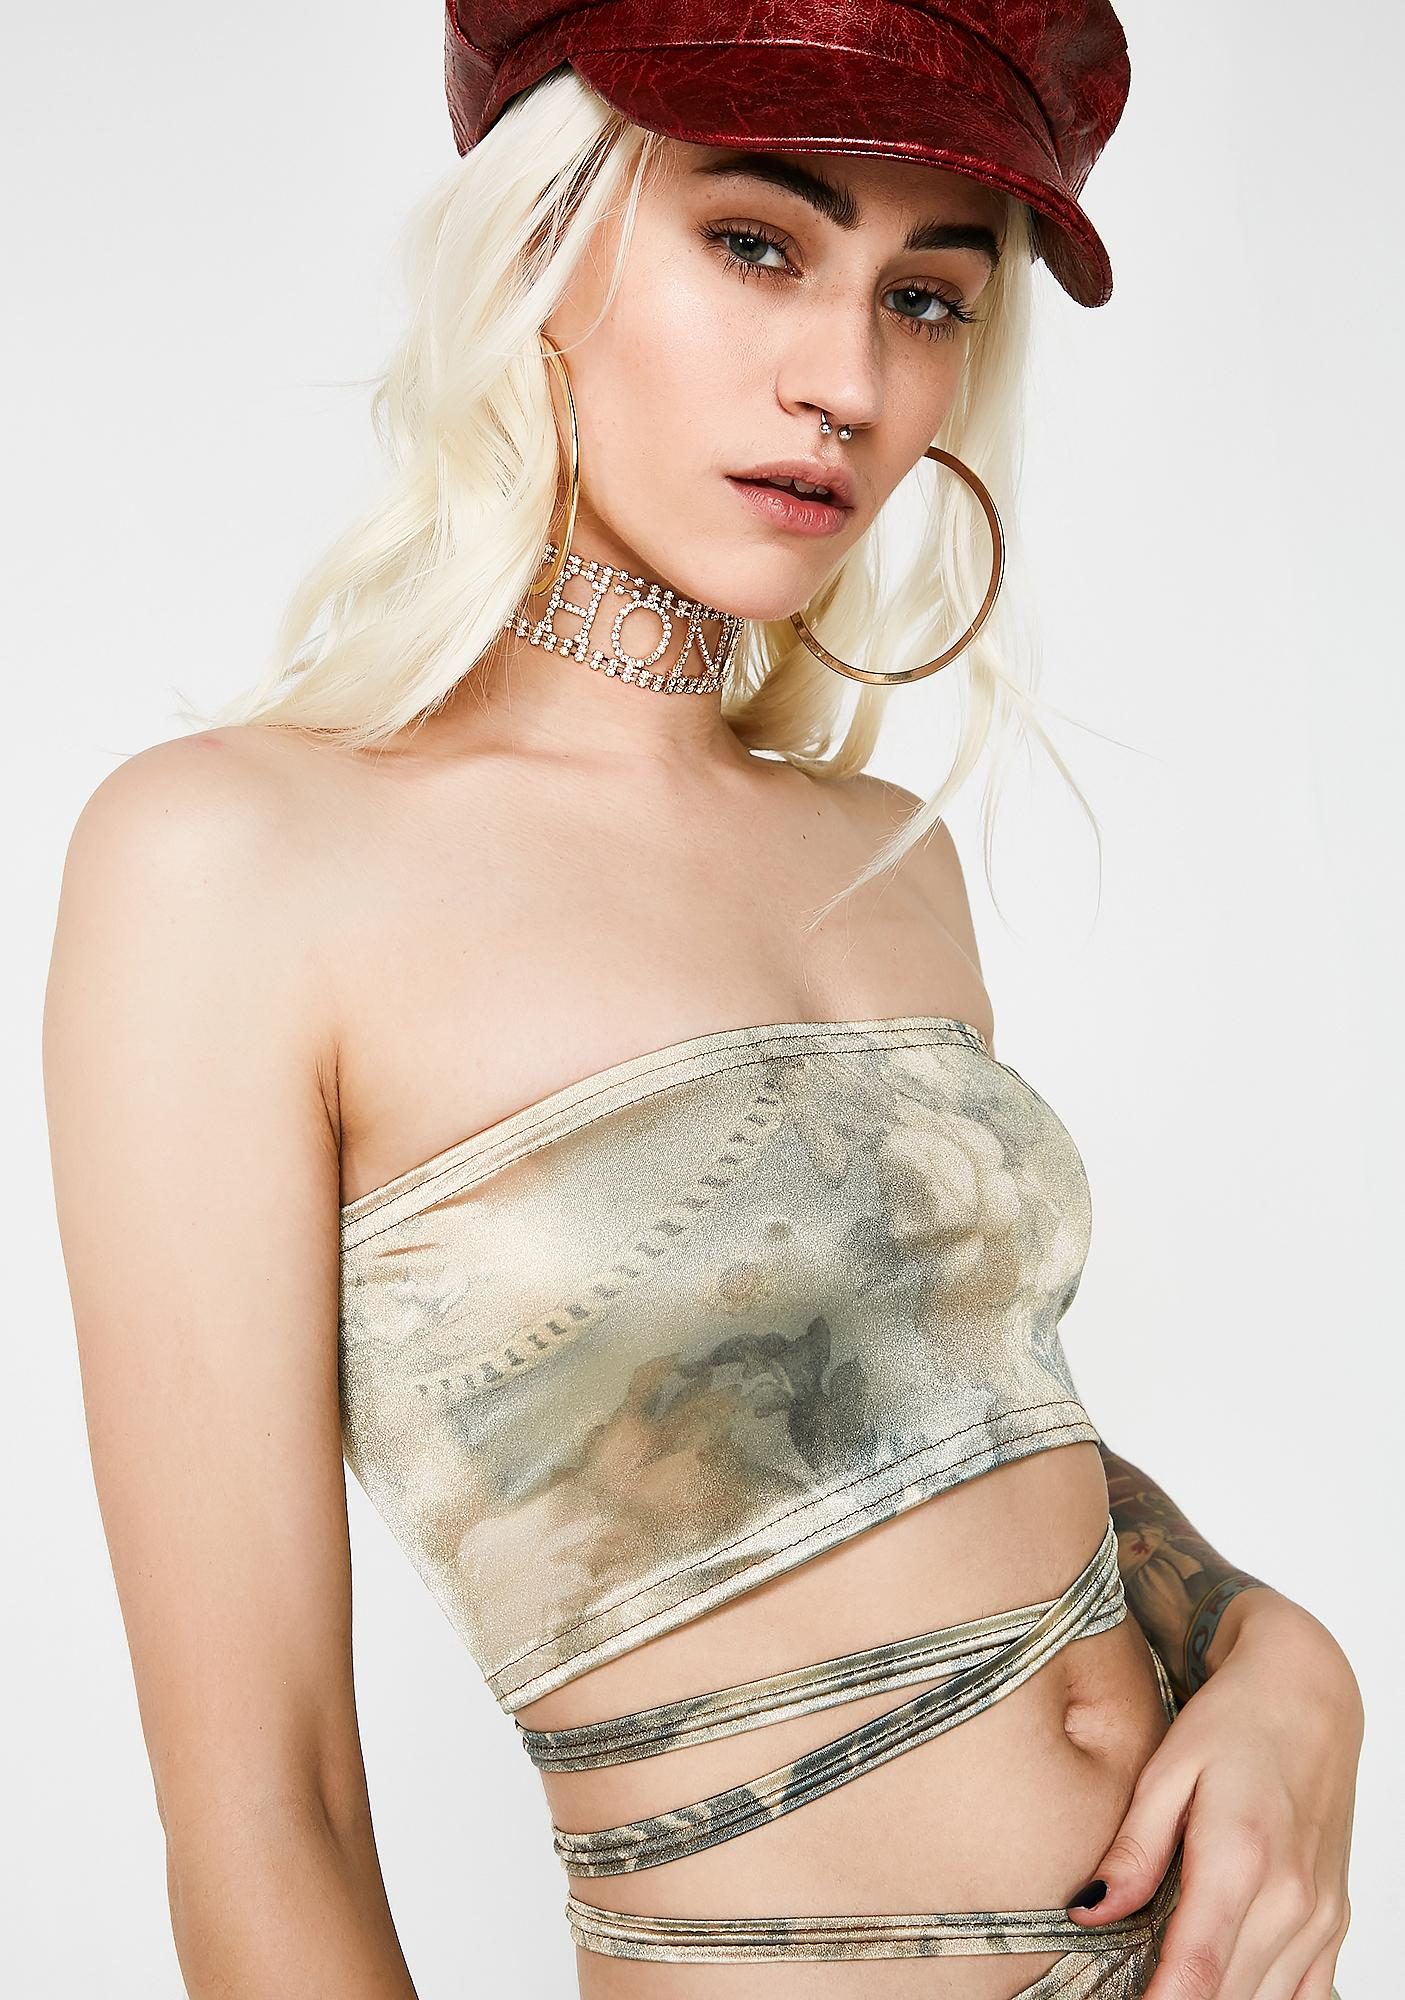 American Deadstock X Internet Girl Silk Road Satin Tube Top